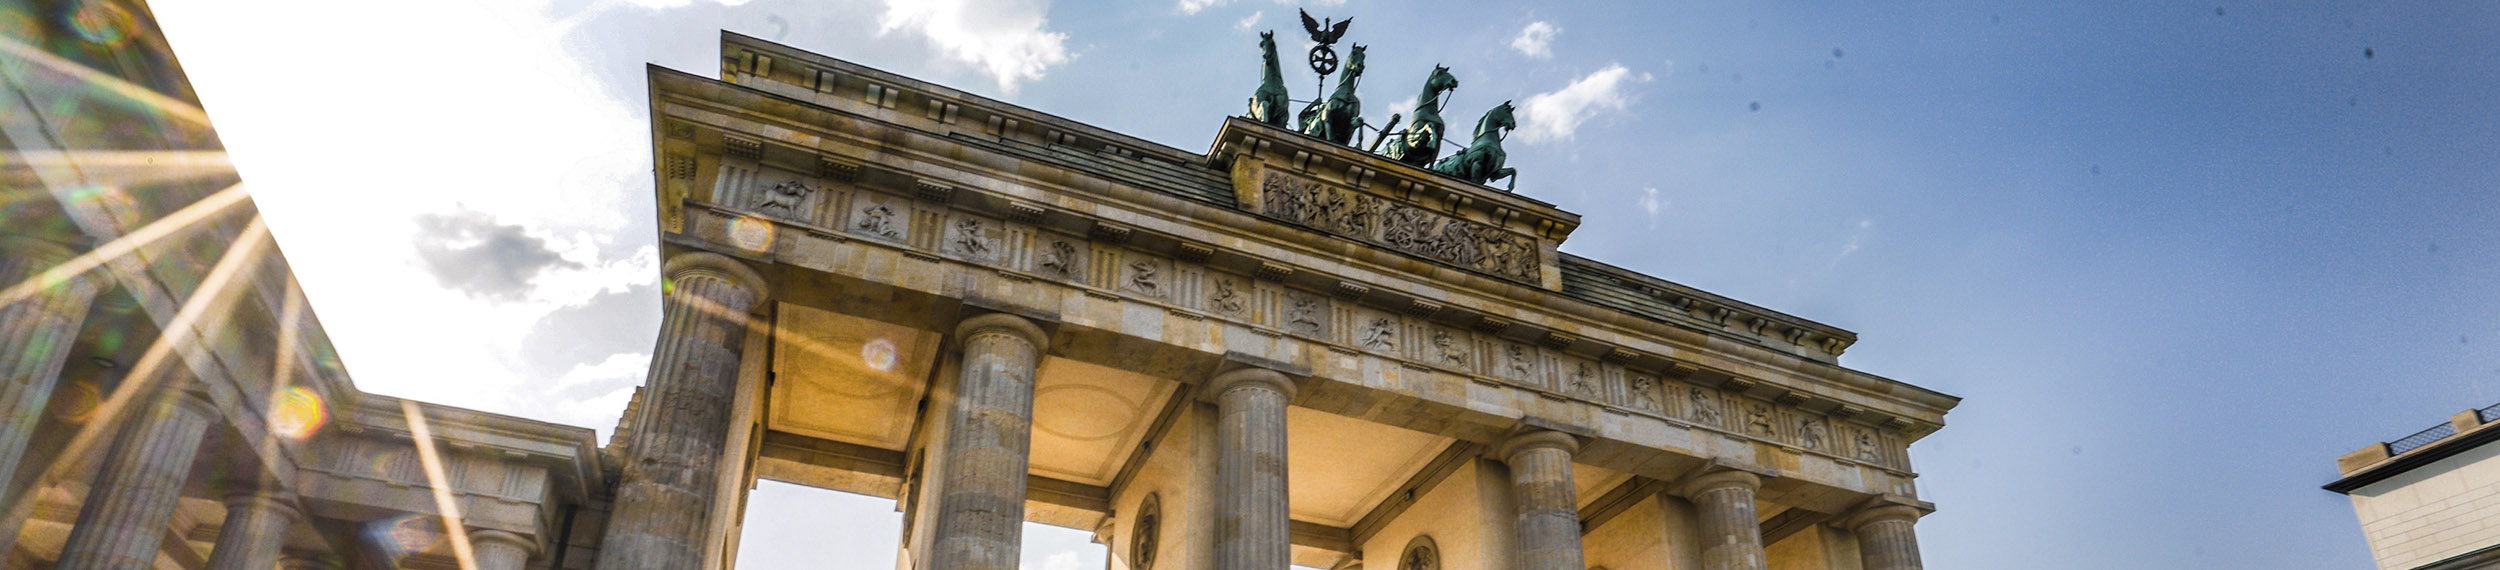 Low angle view of Brandenburg Gate on a sunny day in Berlin, Germany.